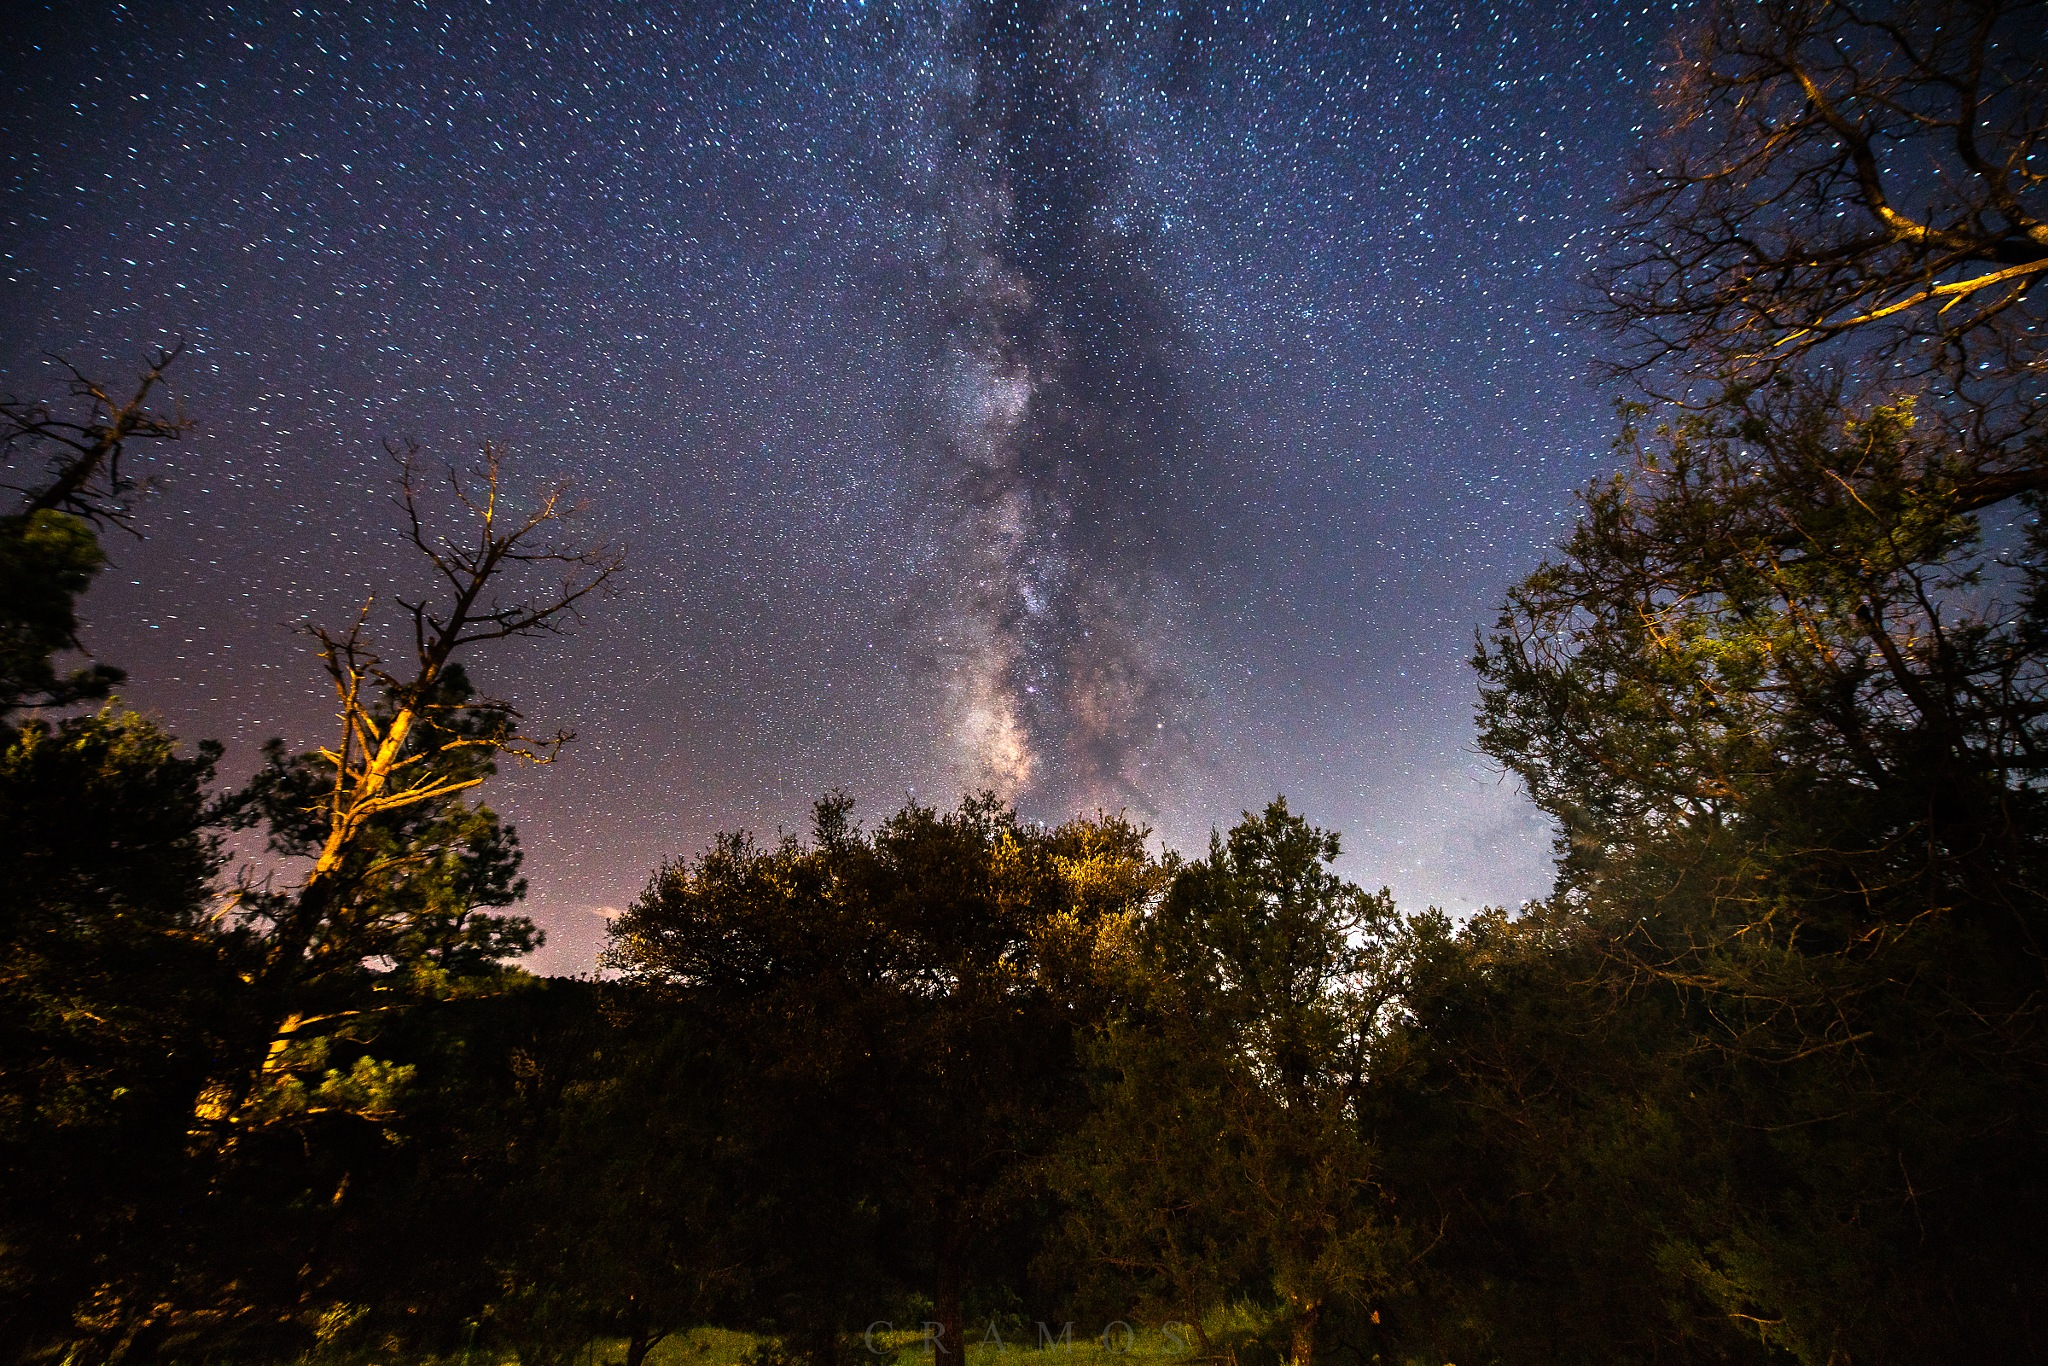 Milkyway above the forest. by César Ramos